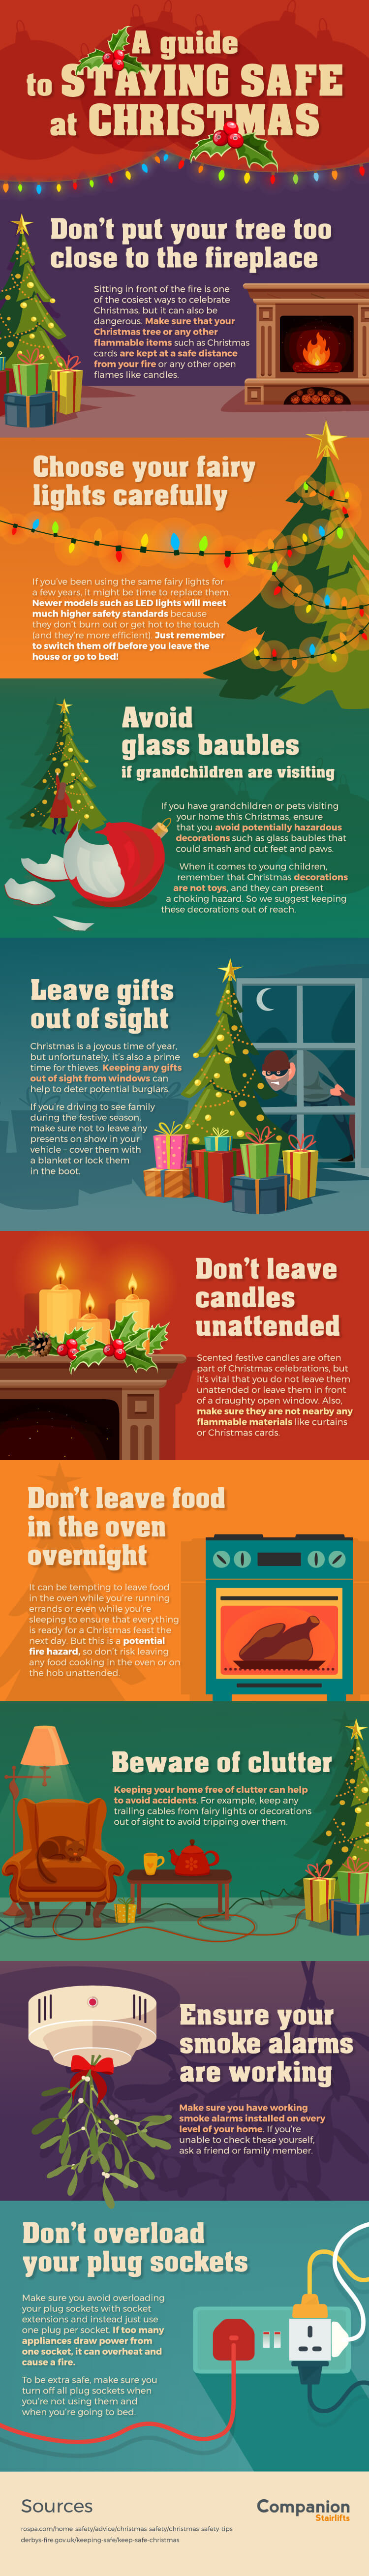 guide-staying-safe-at-christmas-infographic-plaza